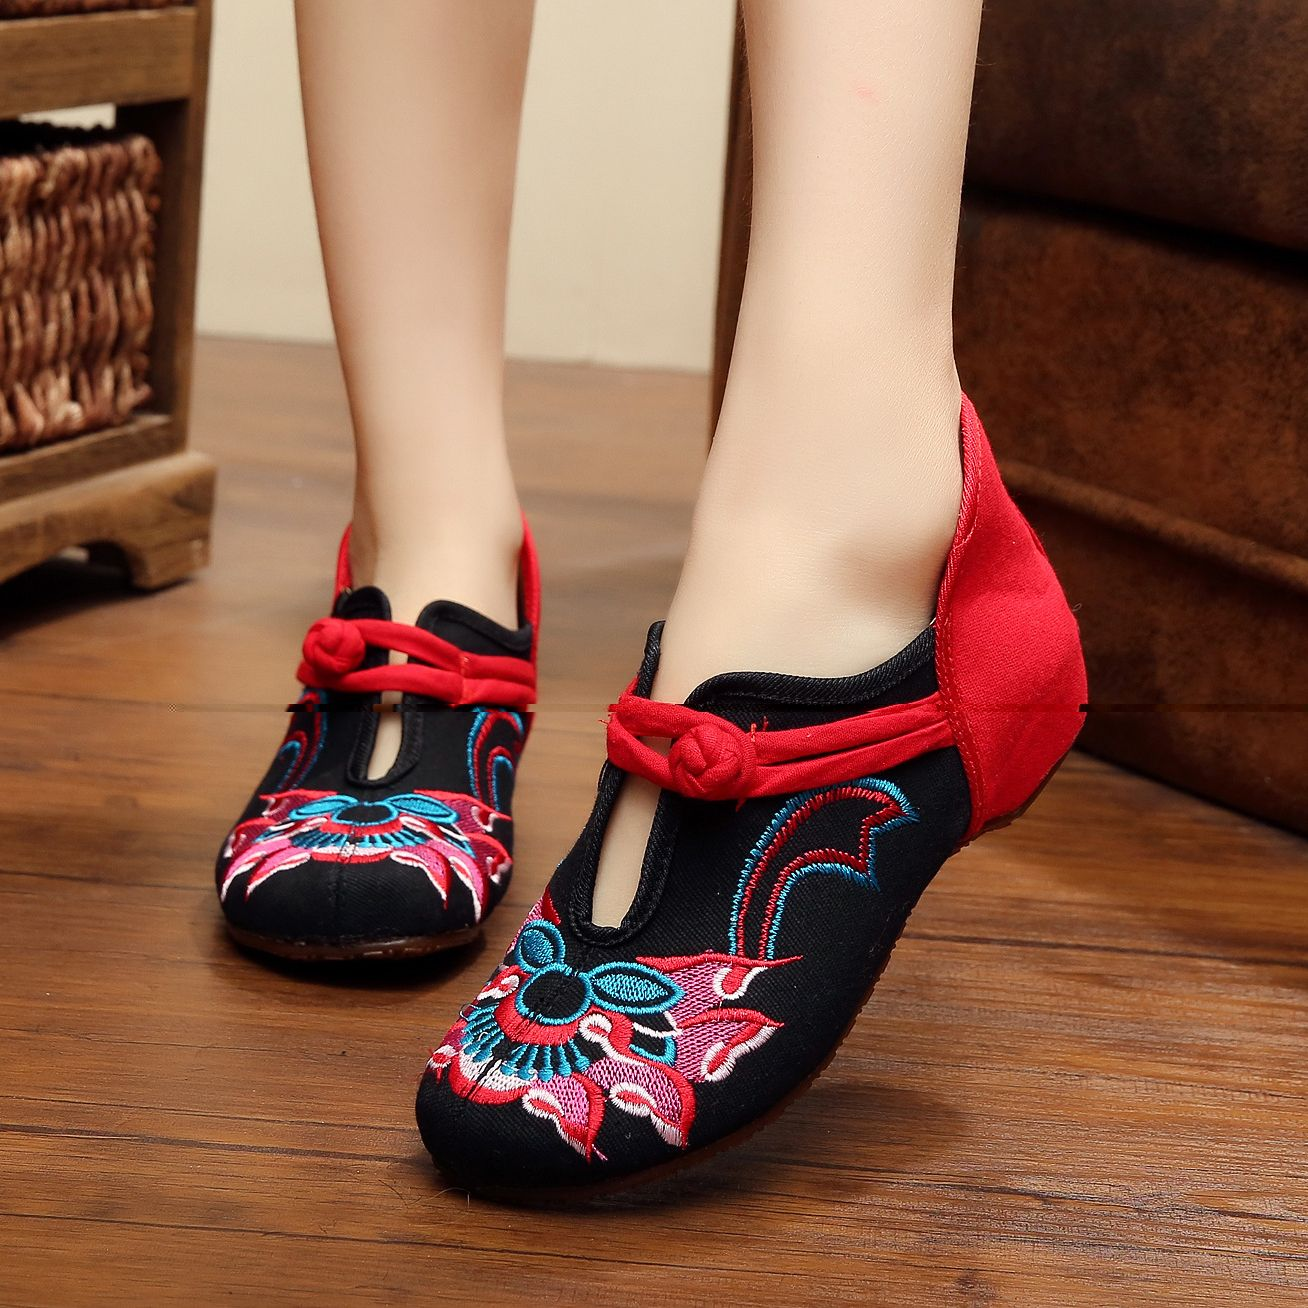 Chinese Vintage Beijing Traditioal Ladies Shoes Classic Ballet Shoe Flats Black